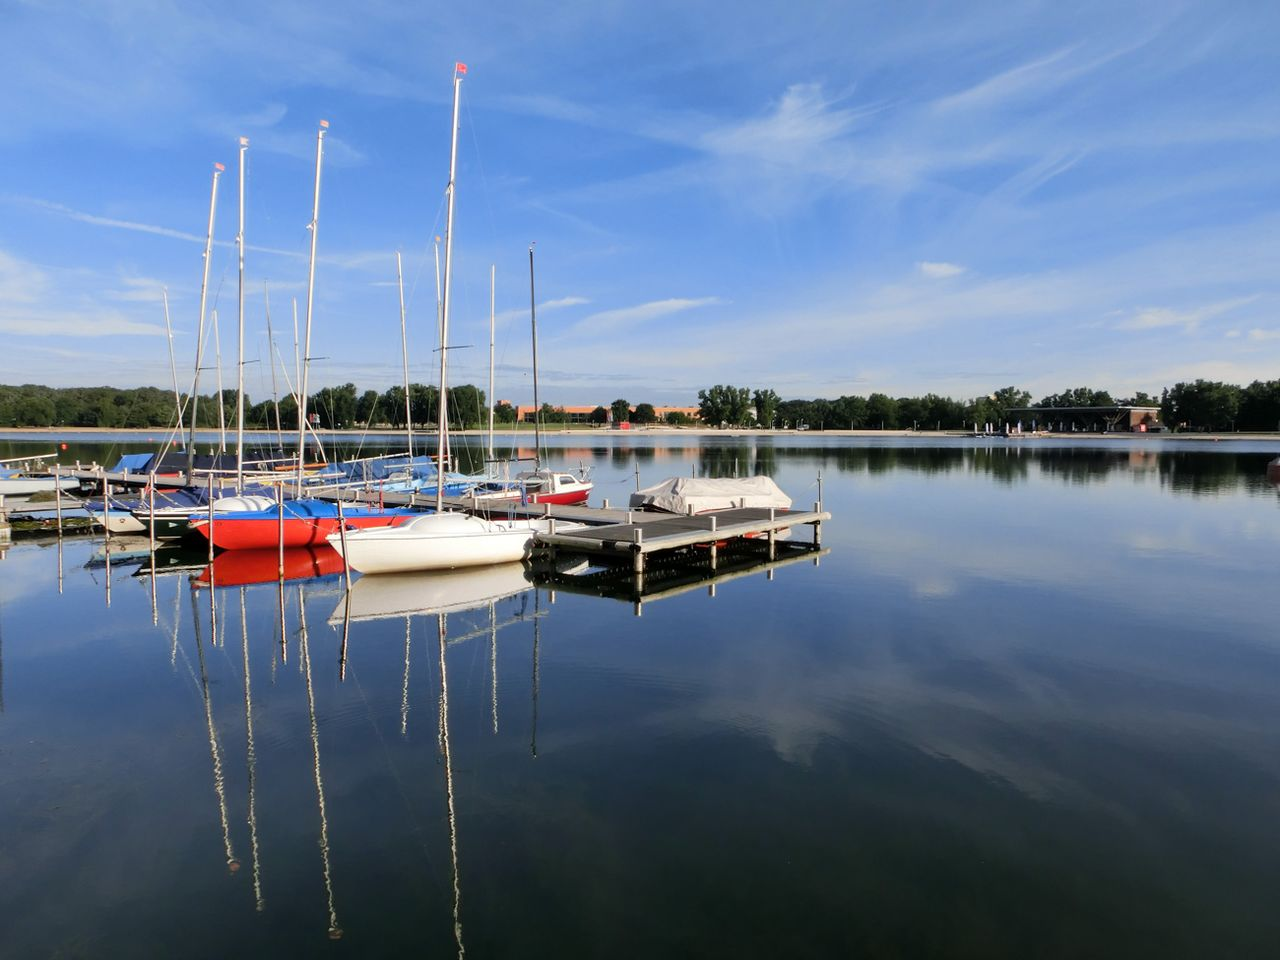 sailing boats on the Allersee lake (photo: J. L. Heinrich)